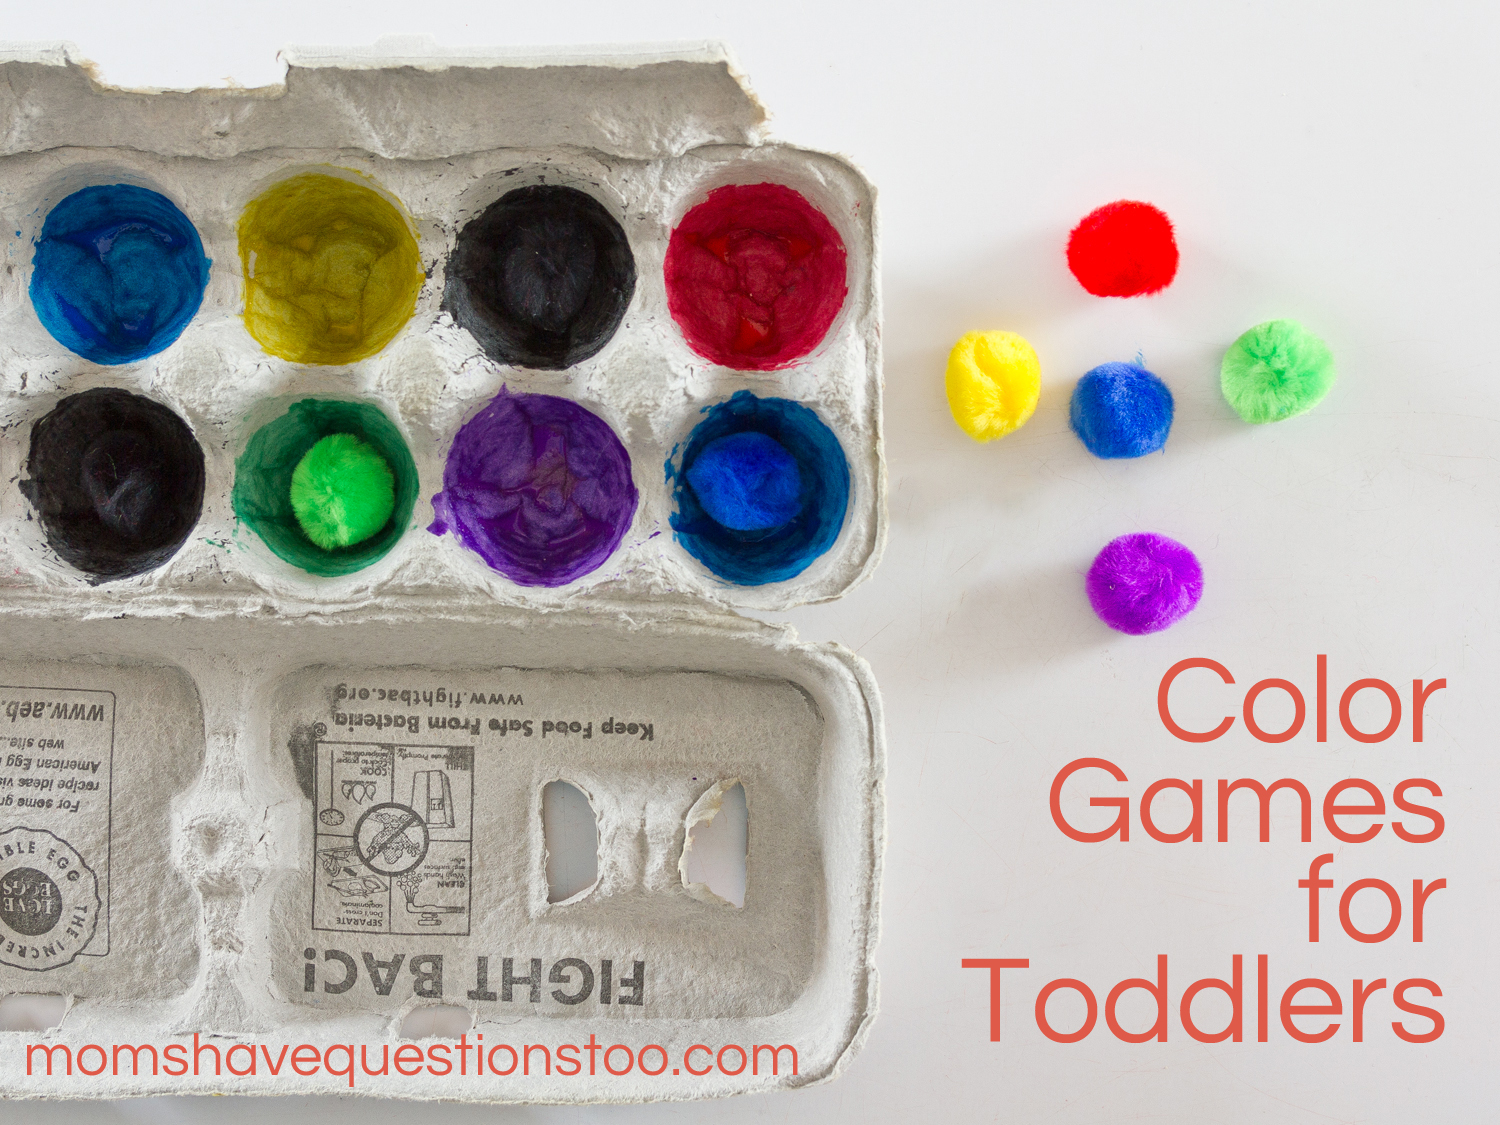 color games for toddlers moms have questions too - Color Games For Toddlers